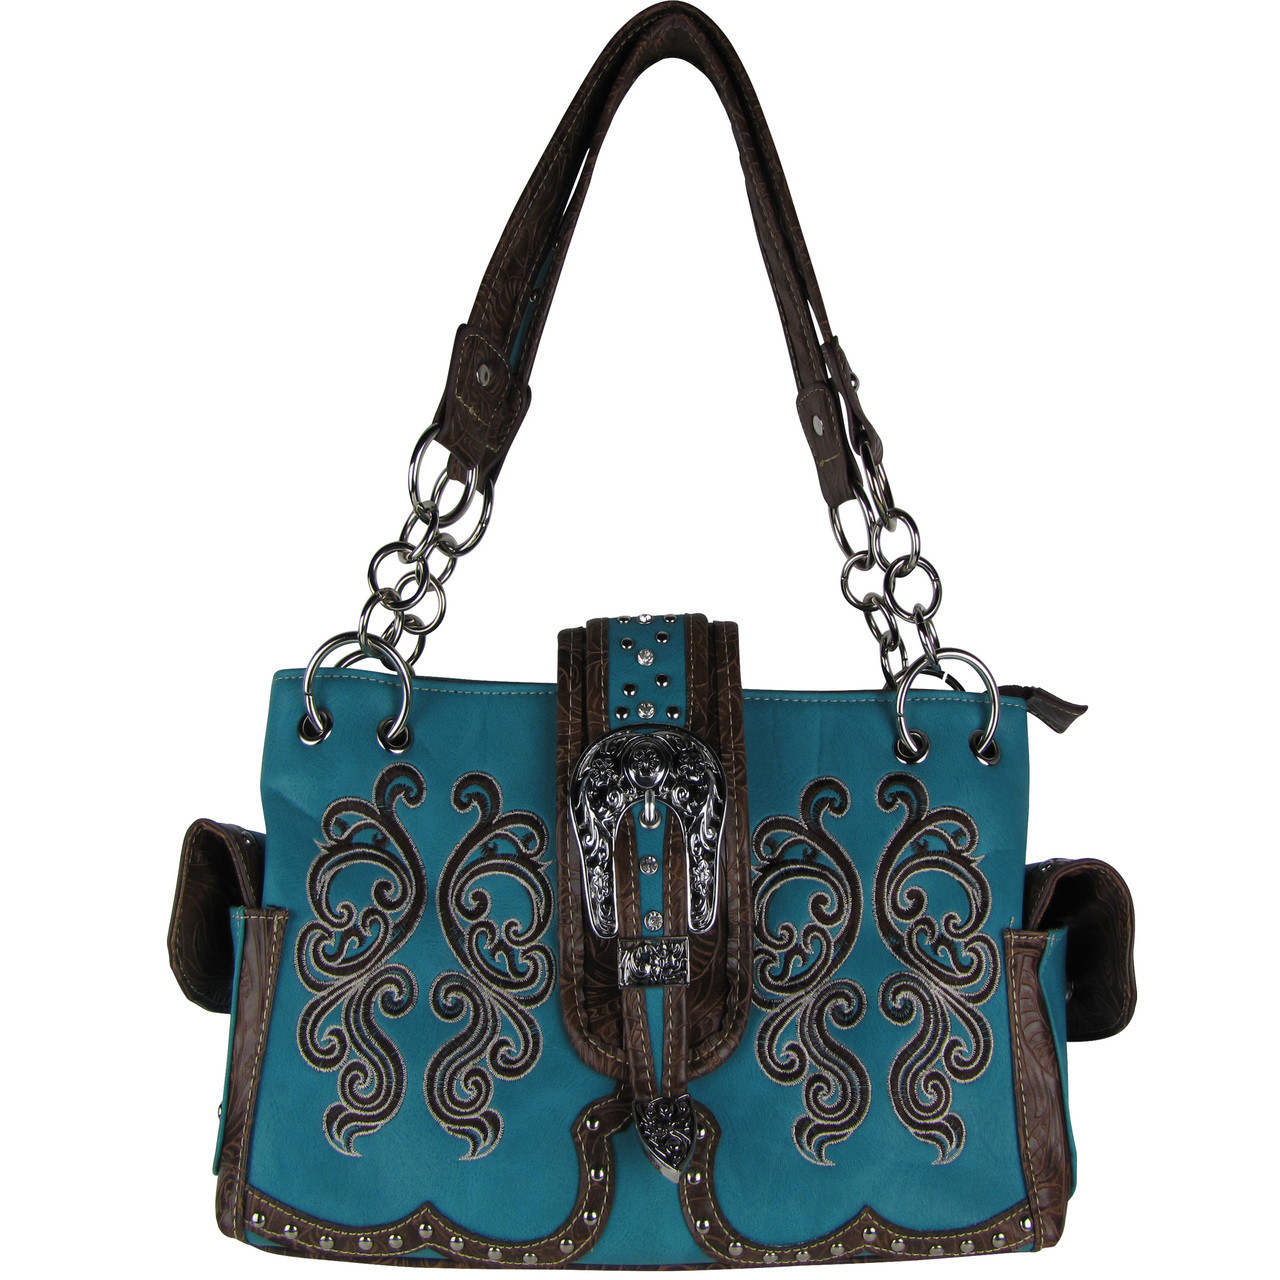 TURQUOISE WESTERN BUCKLE LOOK SHOULDER HANDBAG HB1-39W62TRQ